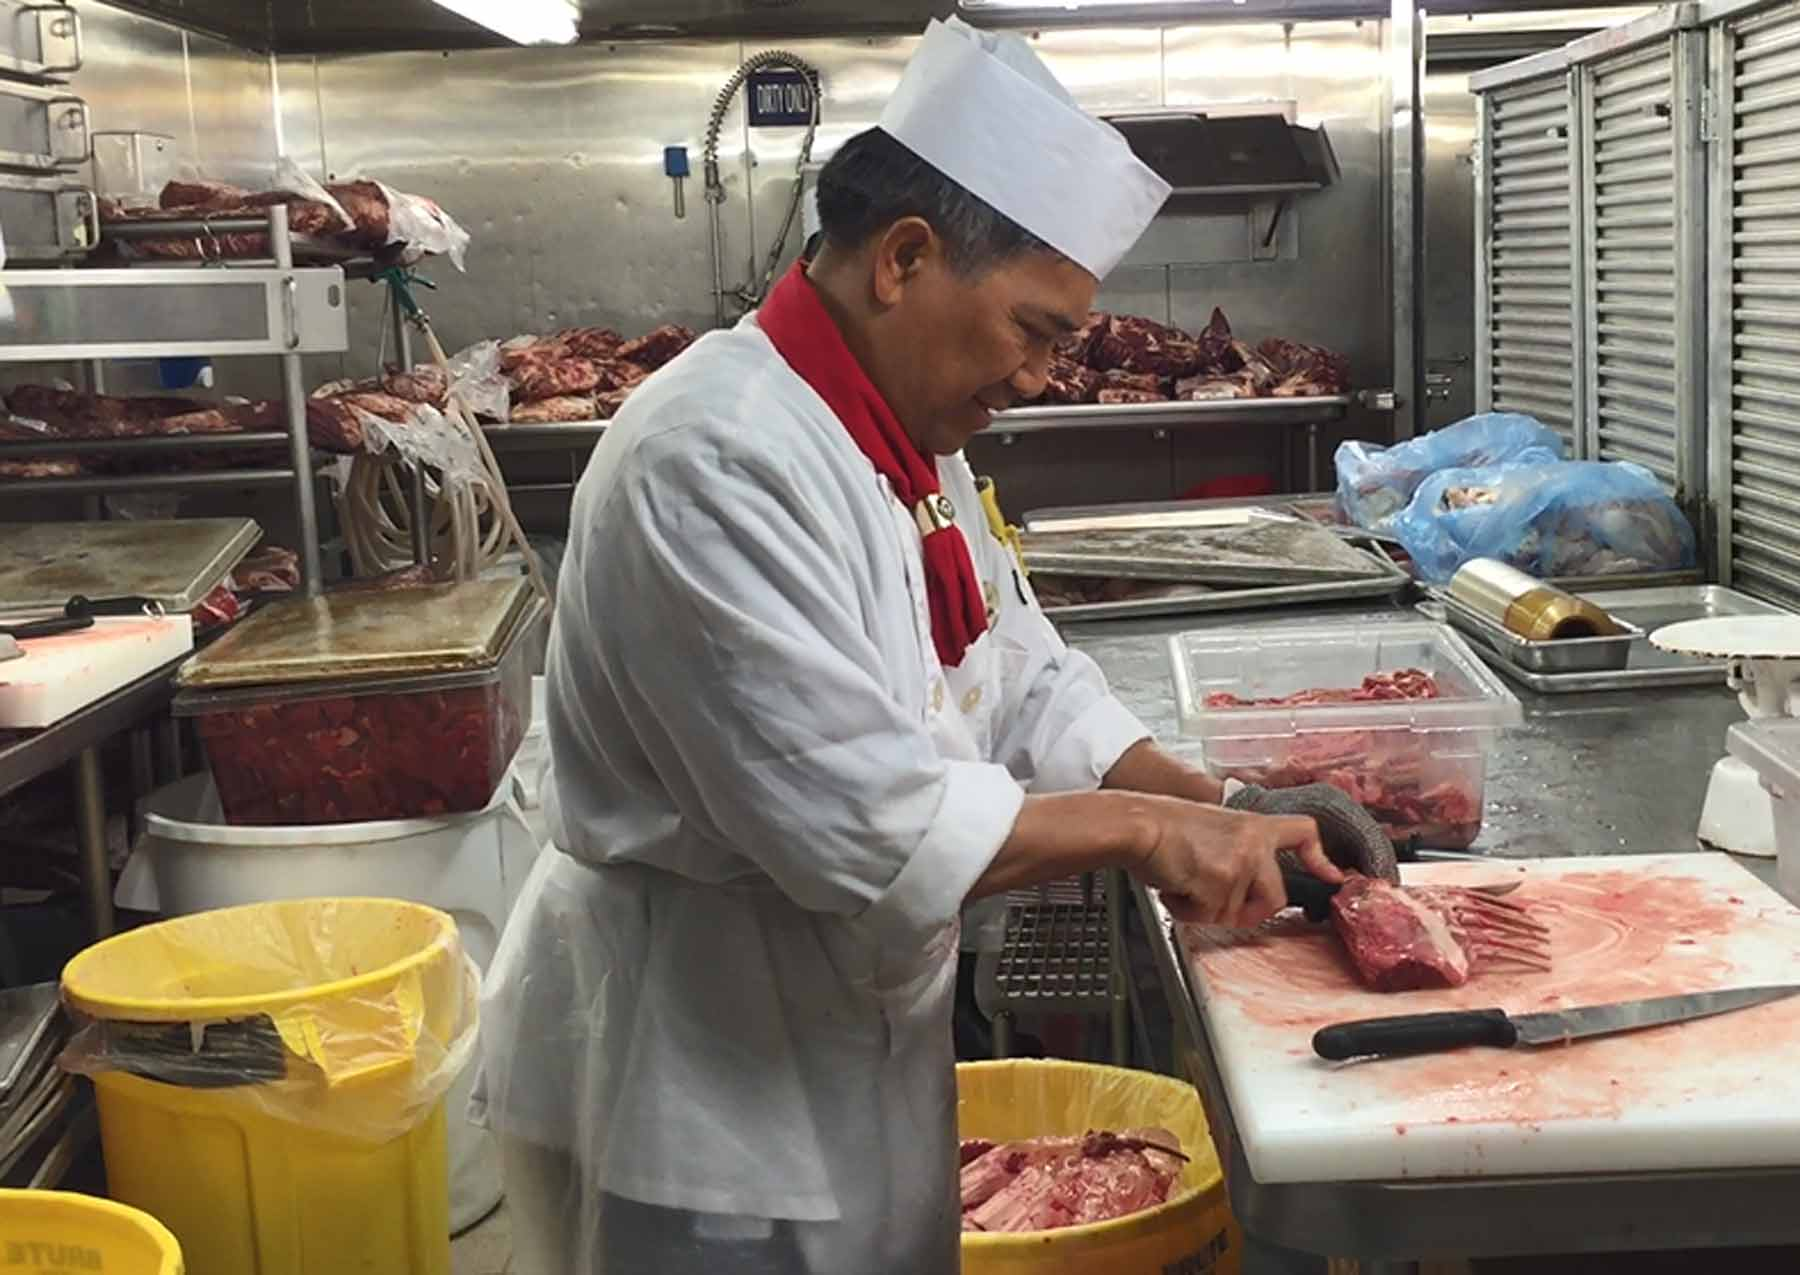 How meals are prepared on a cruise ship